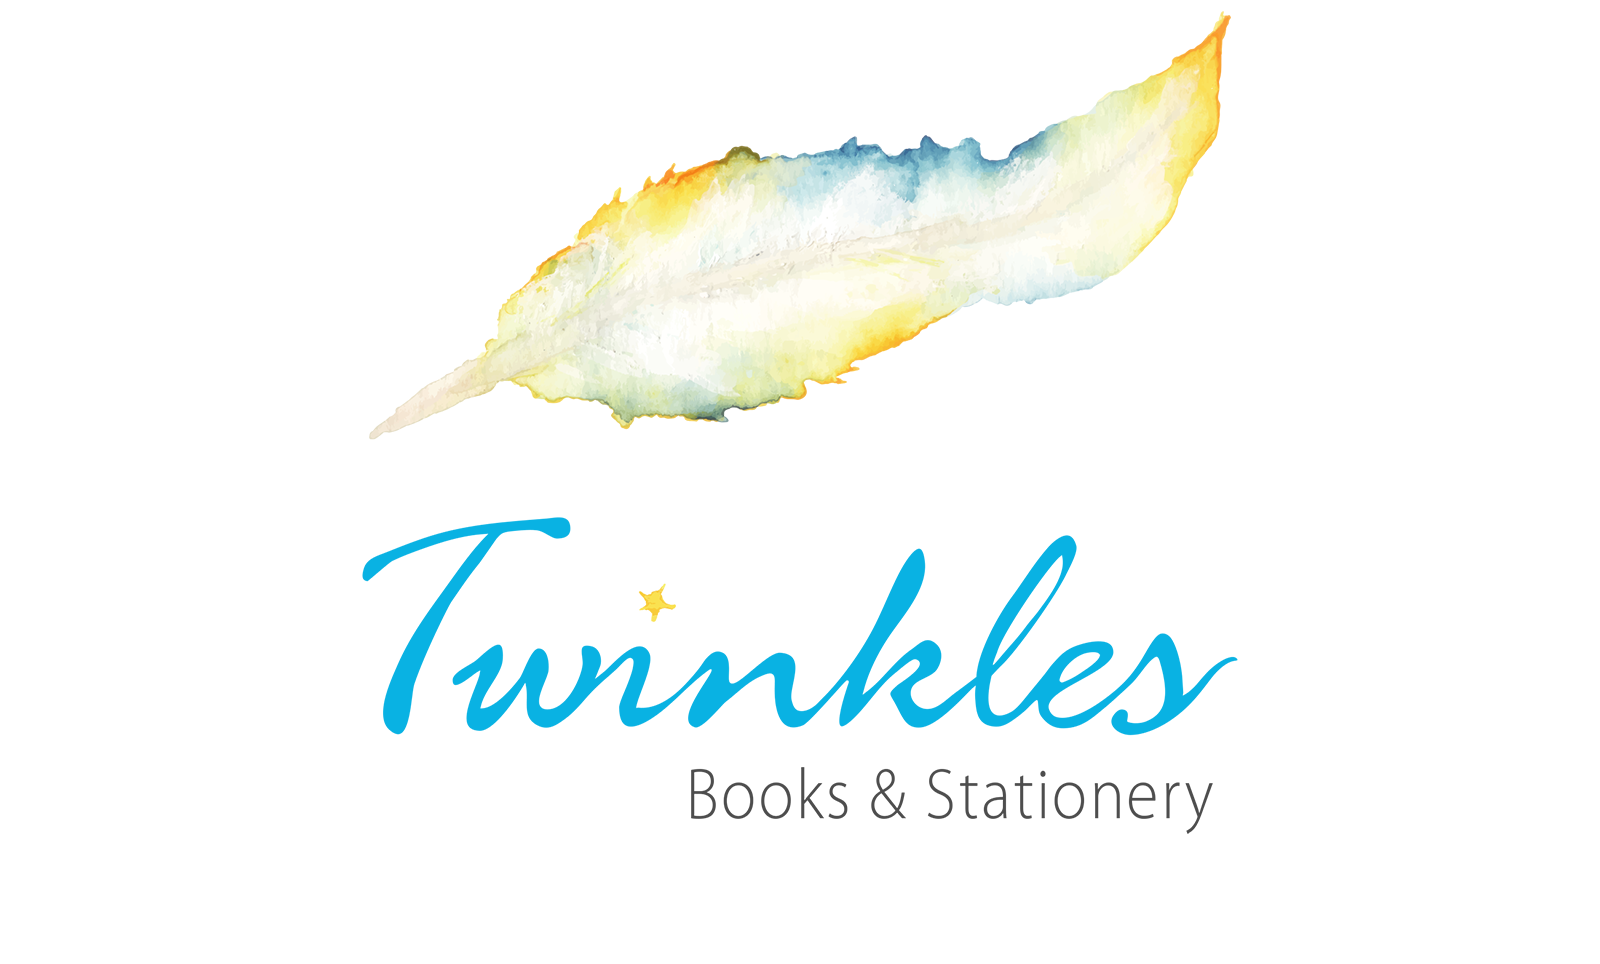 http://bigeyes.co.il/wp-content/uploads/2019/04/Twinkles-logo-1.png